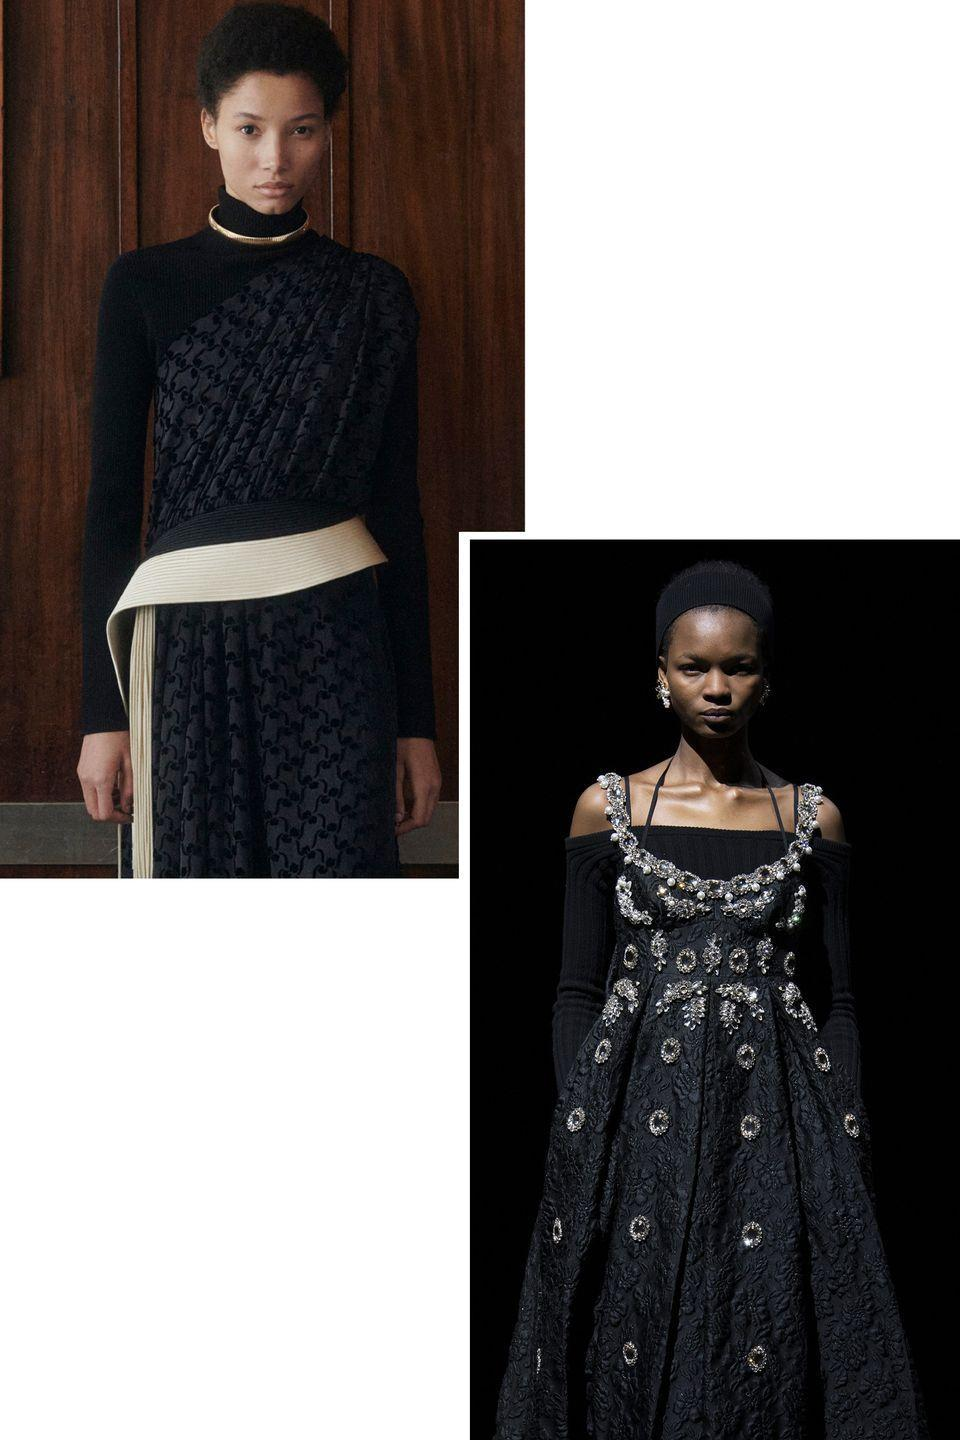 <p>A black sweater can take an evening dress from night to day or add a little casual vibe to day-to-night dressing.</p><p><em>Pictured: Erdem</em></p>